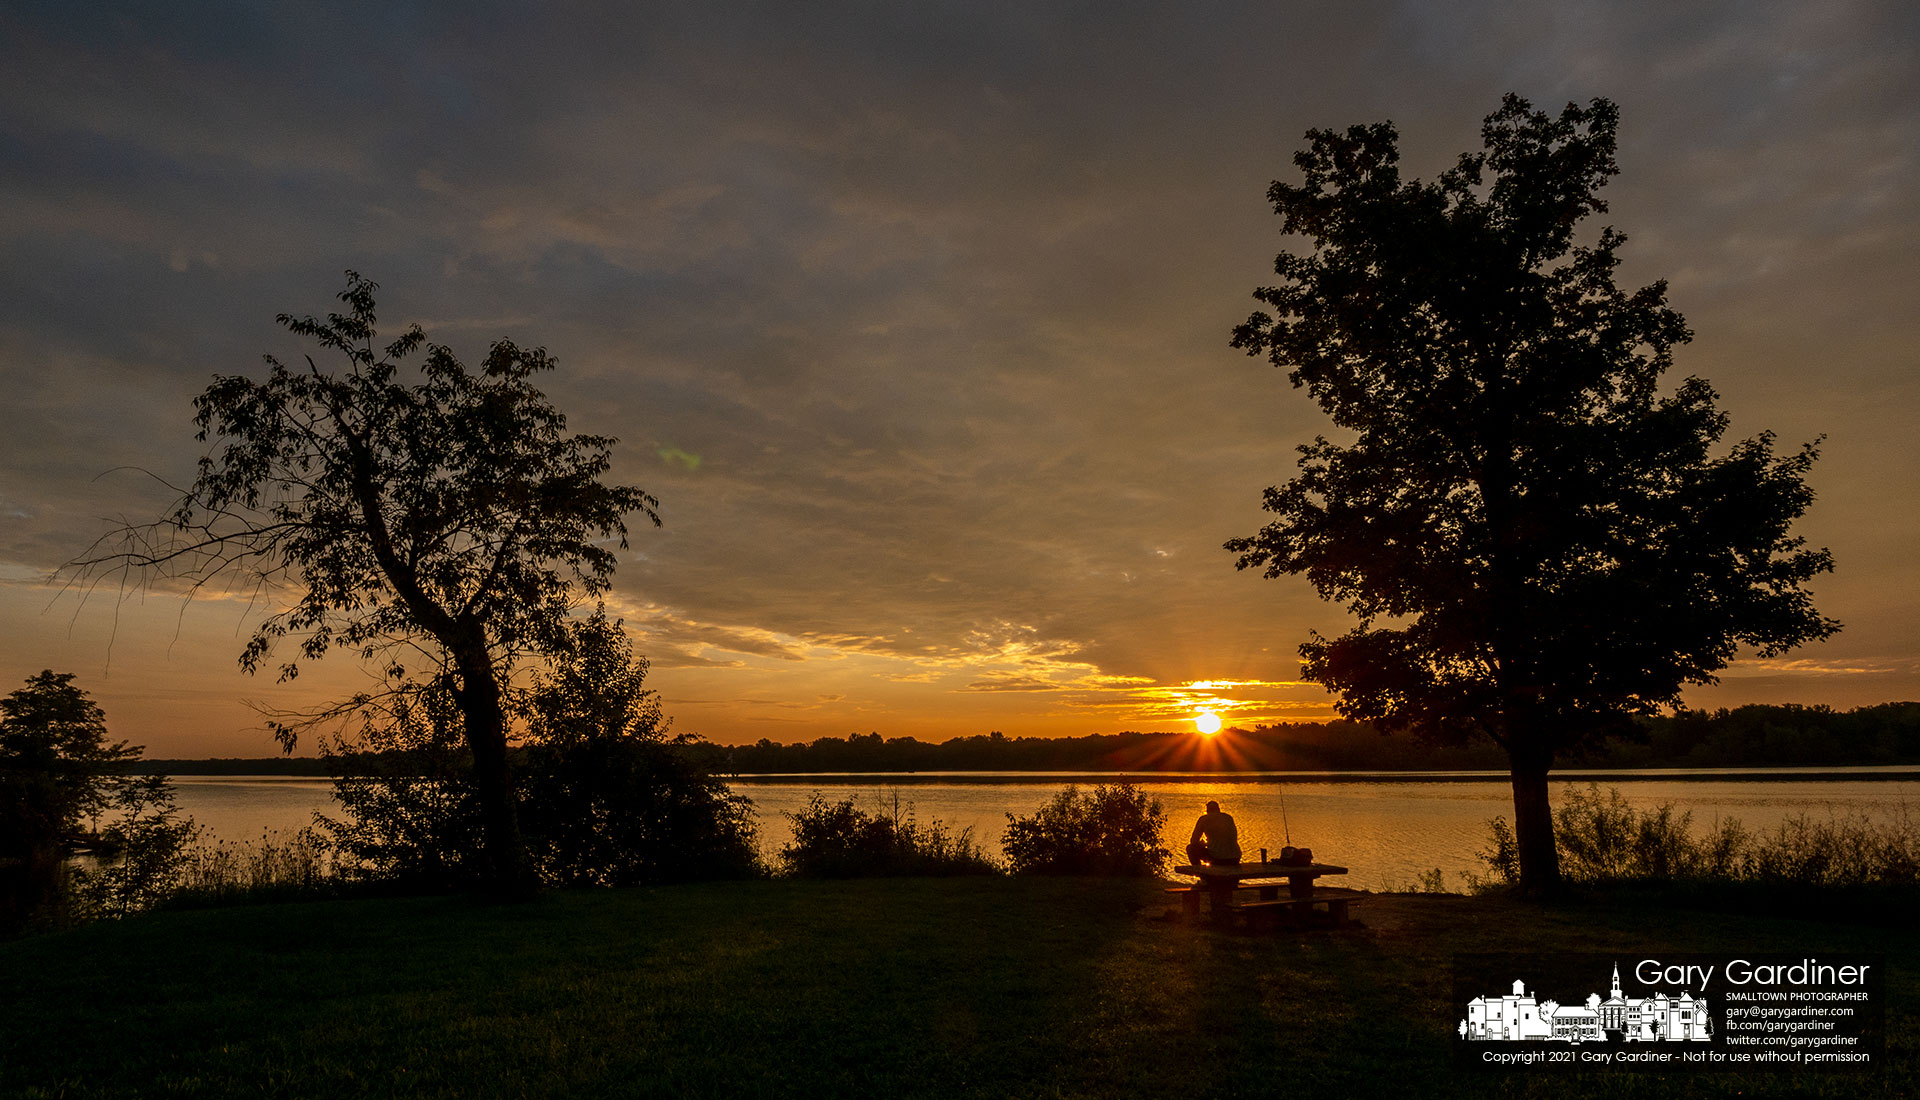 A fisherman watches his lines and the sunrise over the trees from his perch on the picnic table at the edge of Hoover Reservoir at Red Bank Marina. My Final Photo for Aug. 28, 2021.